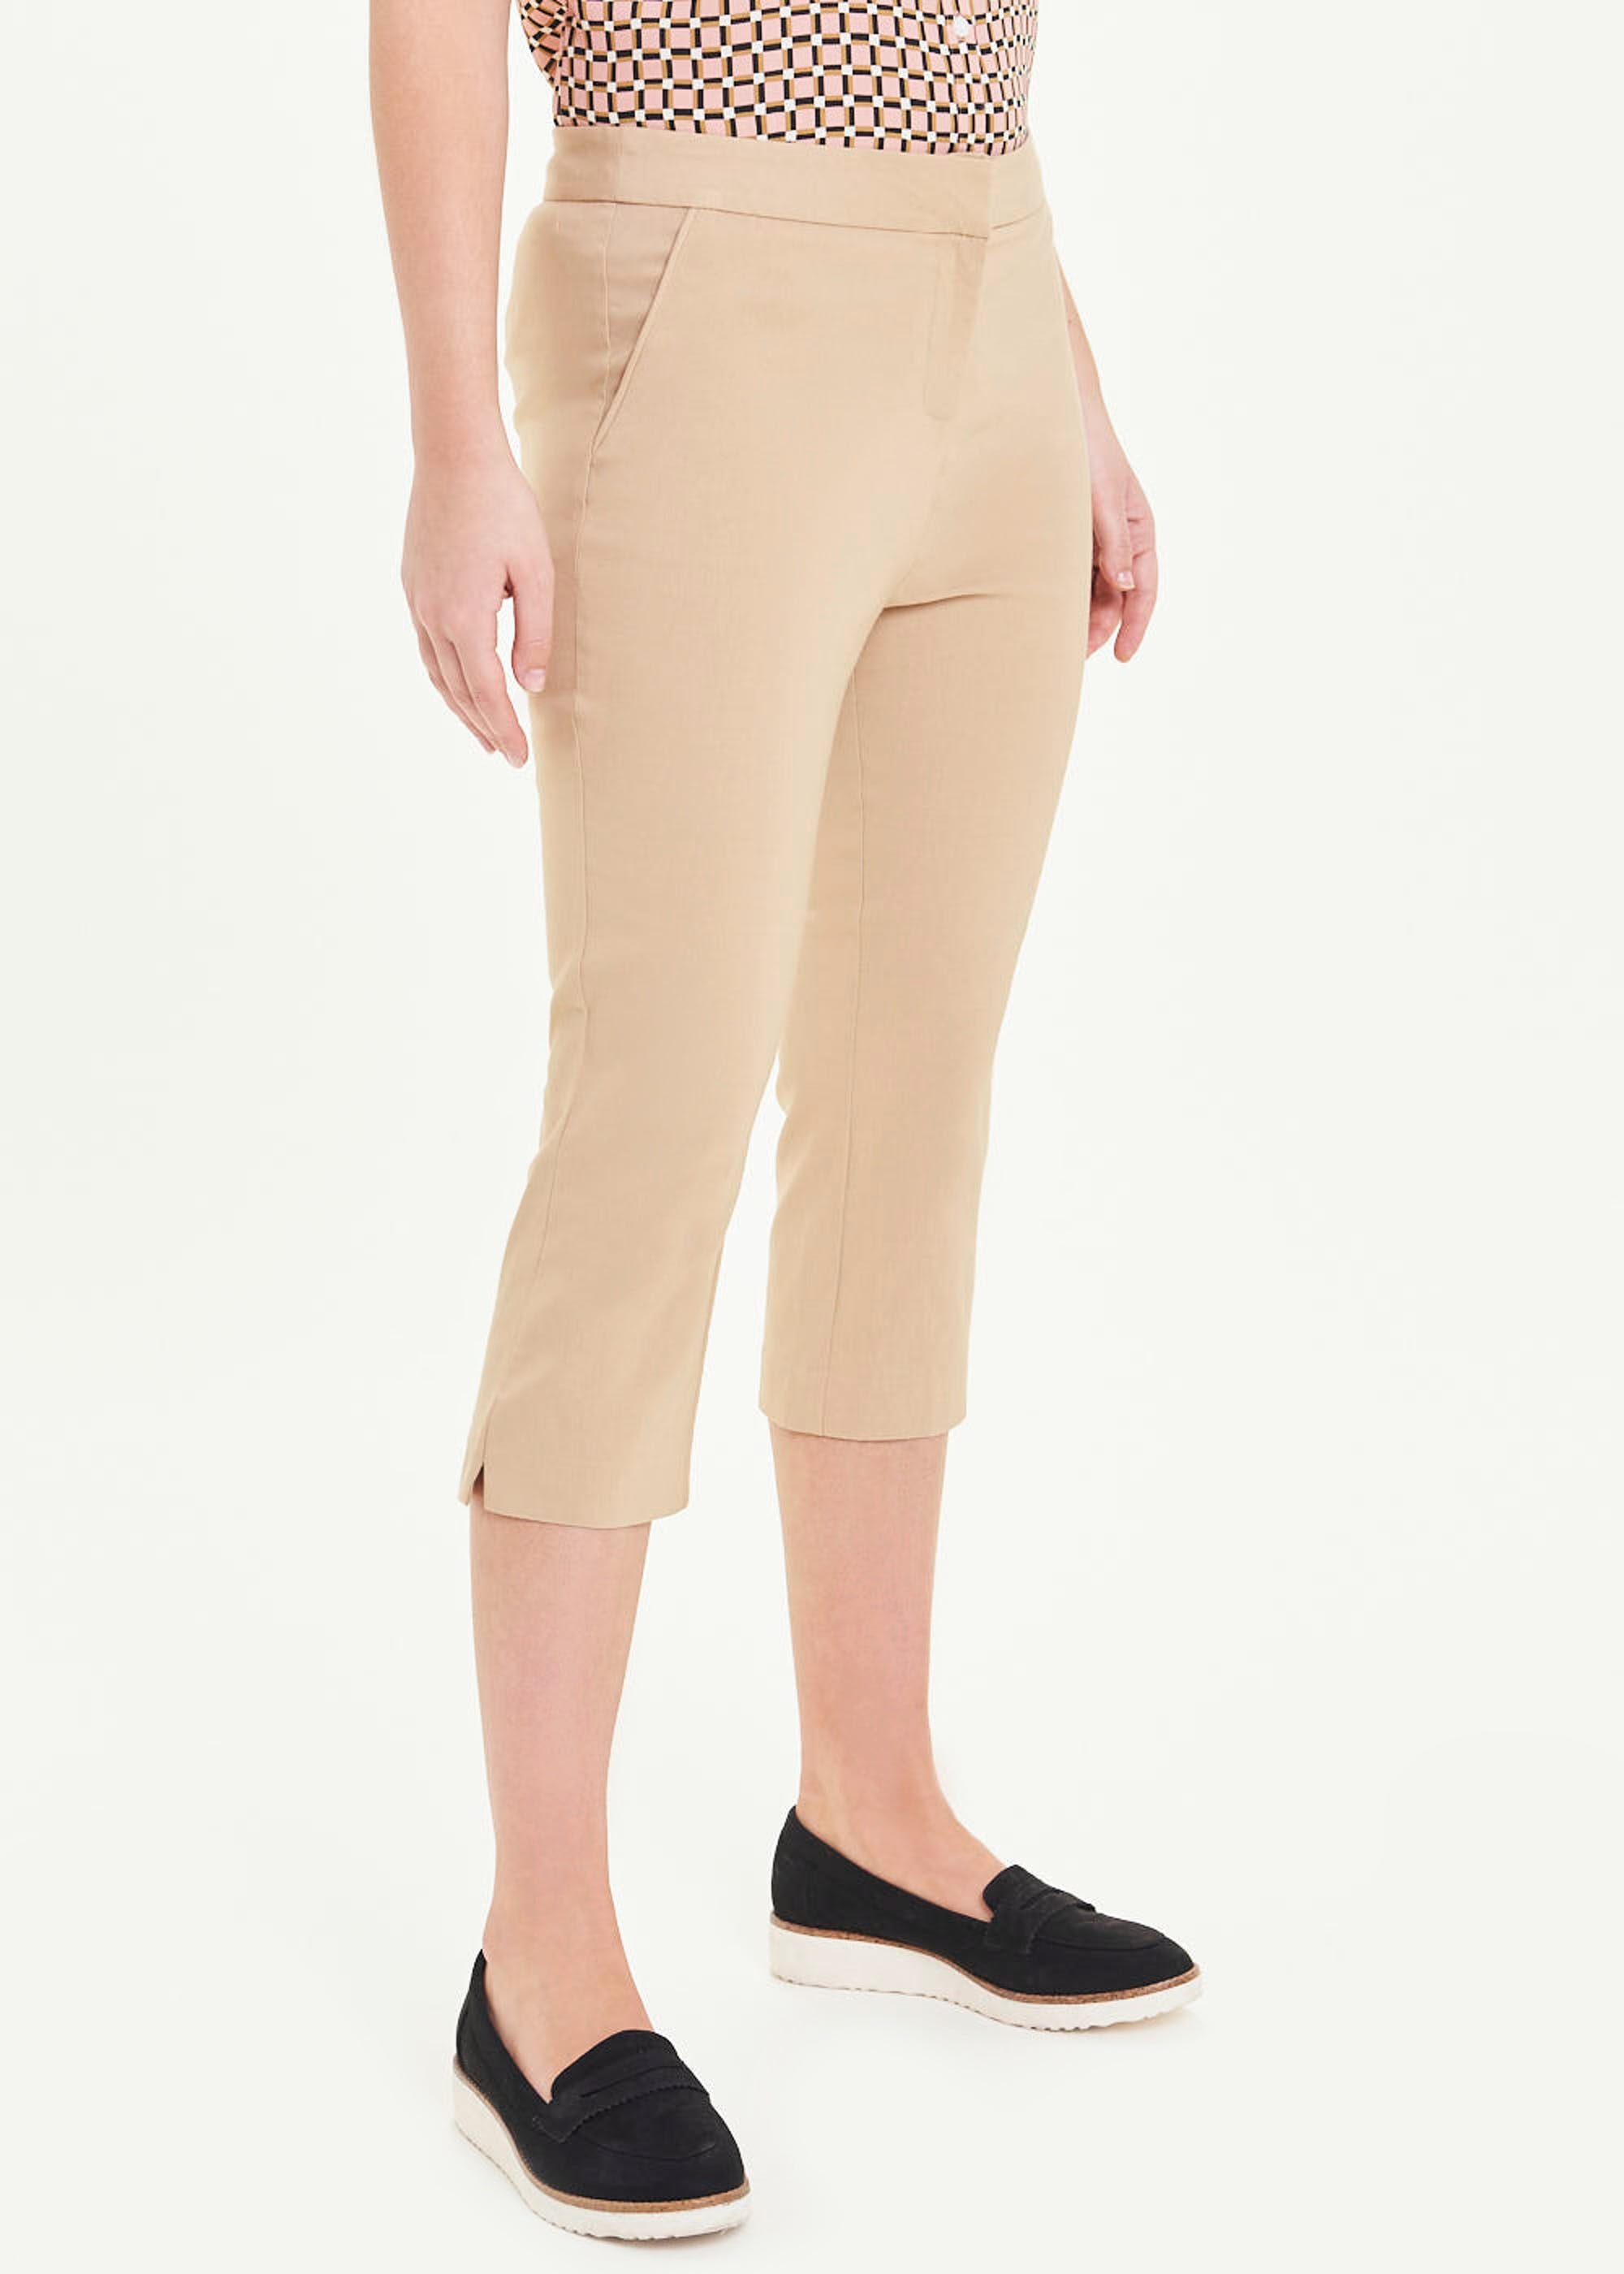 Cropped Bengaline Trousers Beige RM6izl